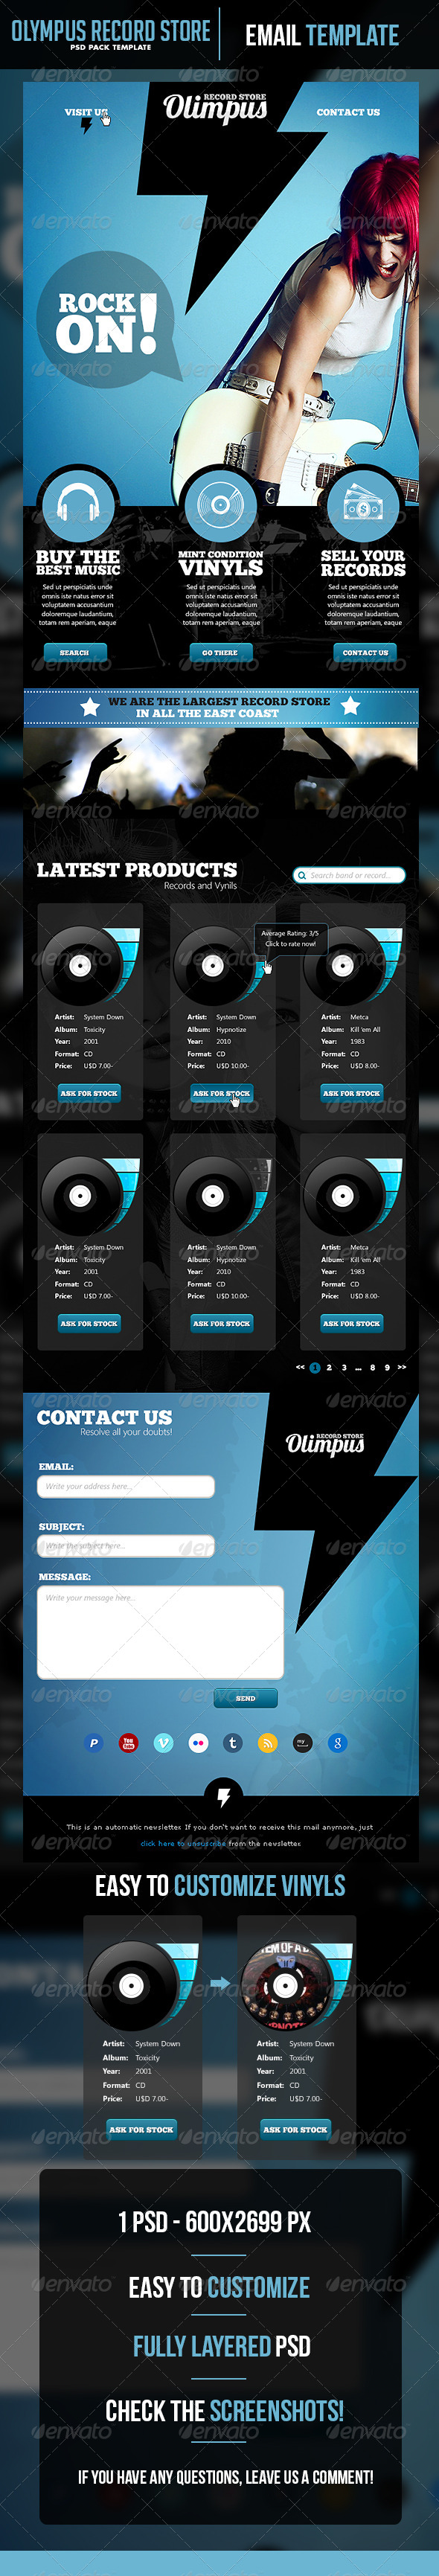 GraphicRiver Olympus Record Store Email Template 5373794